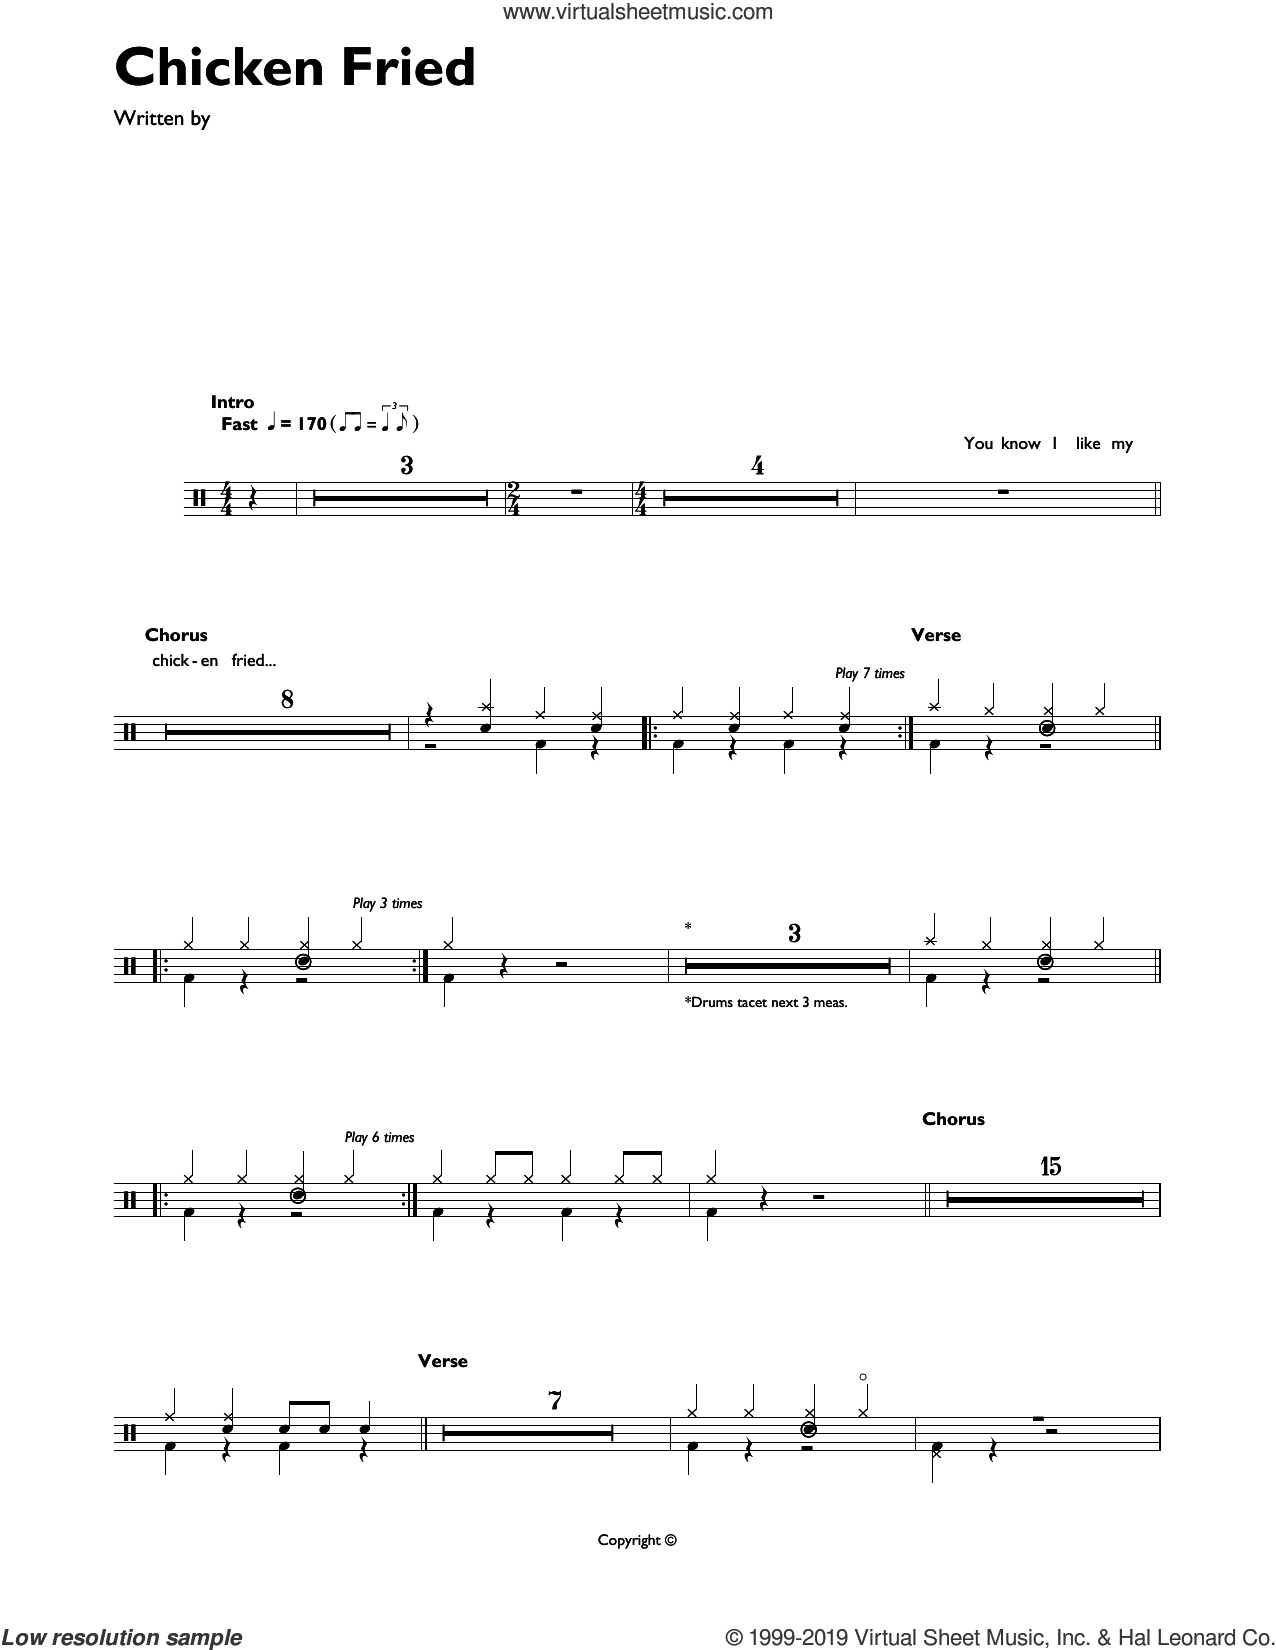 Chicken Fried sheet music for drums (percussions) by Zac Brown Band, Wyatt Durrette and Zac Brown, intermediate skill level